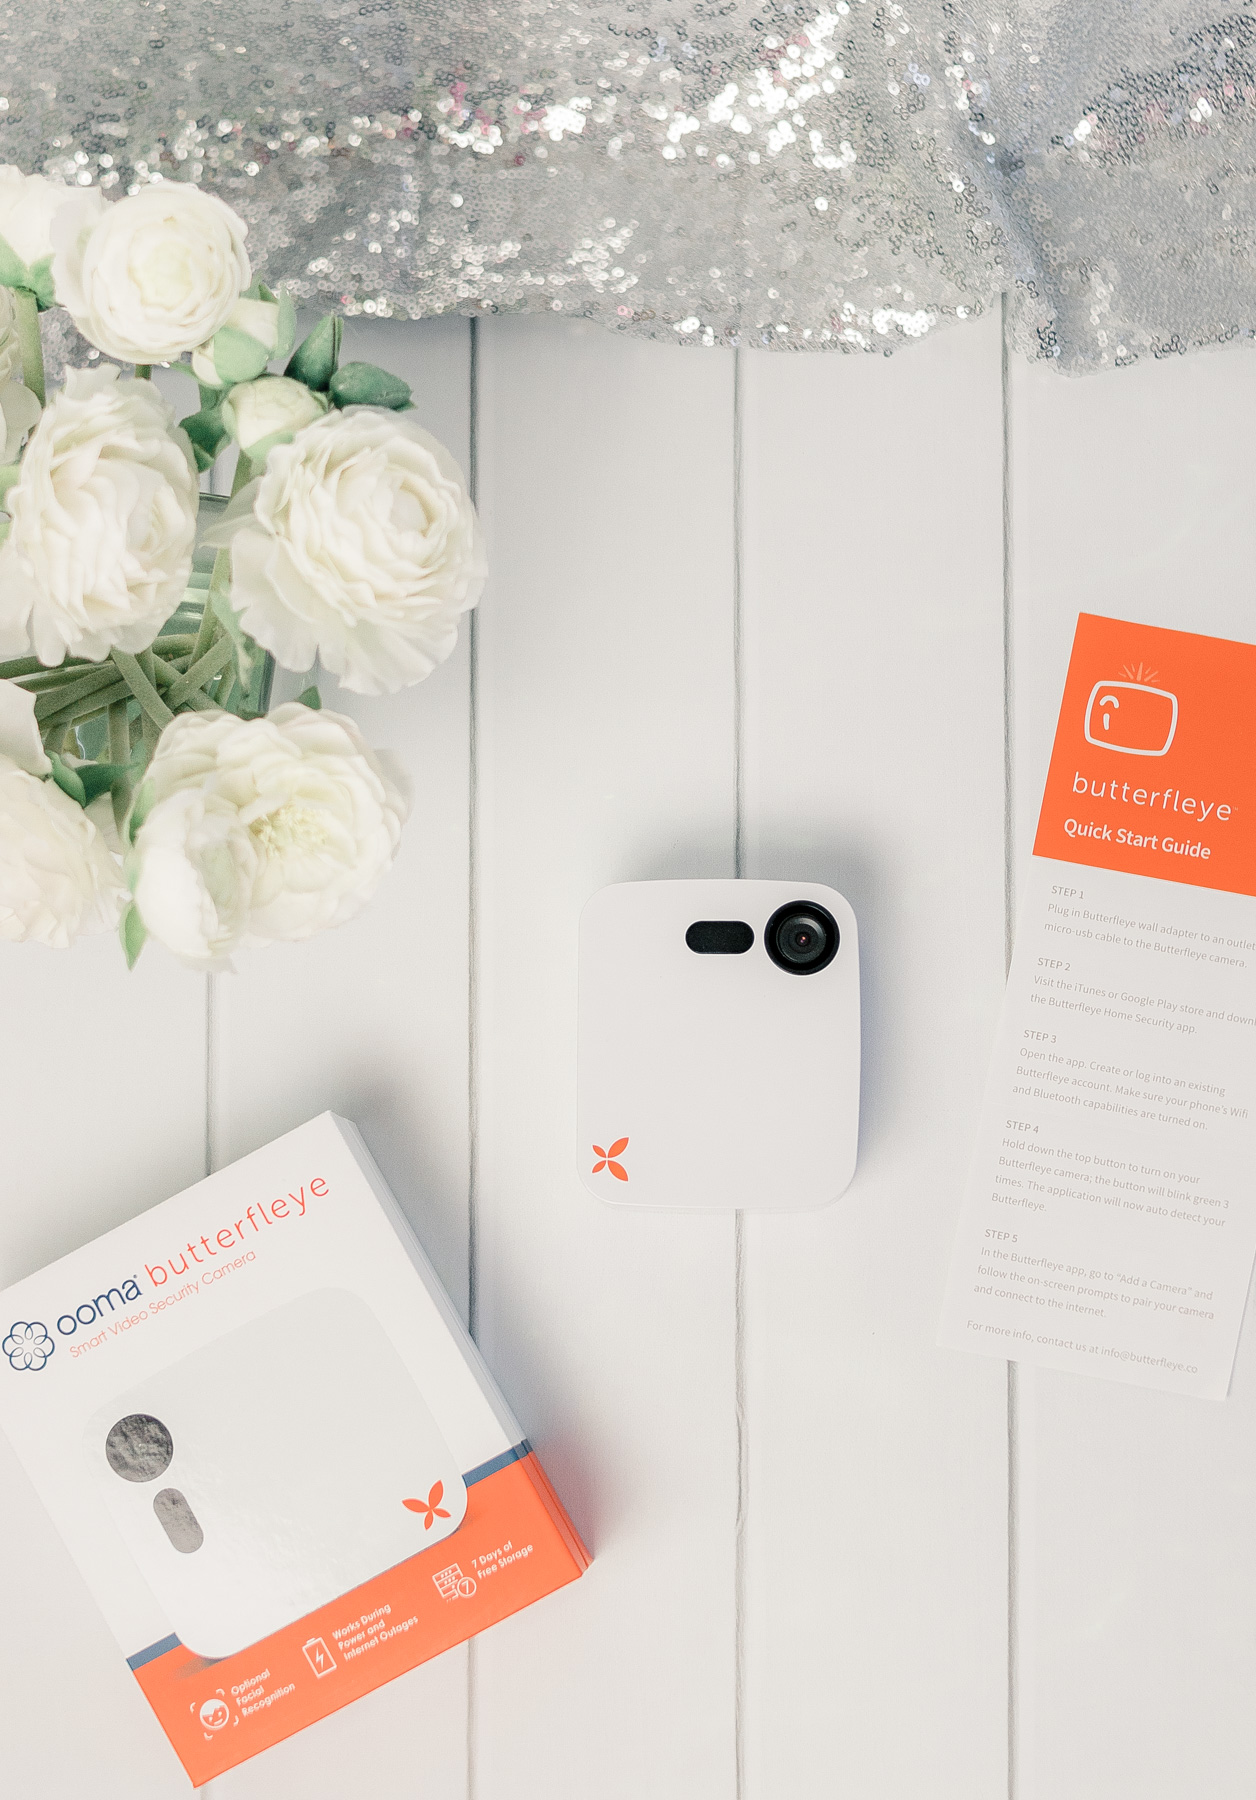 Ever wish you can keep an eye on your home while you're away? #ad The Ooma Butterfleye security camera allows me to make sure my home was secure. Read more about the features of this camera for a chance to win one for your home! #OomaButterfleye